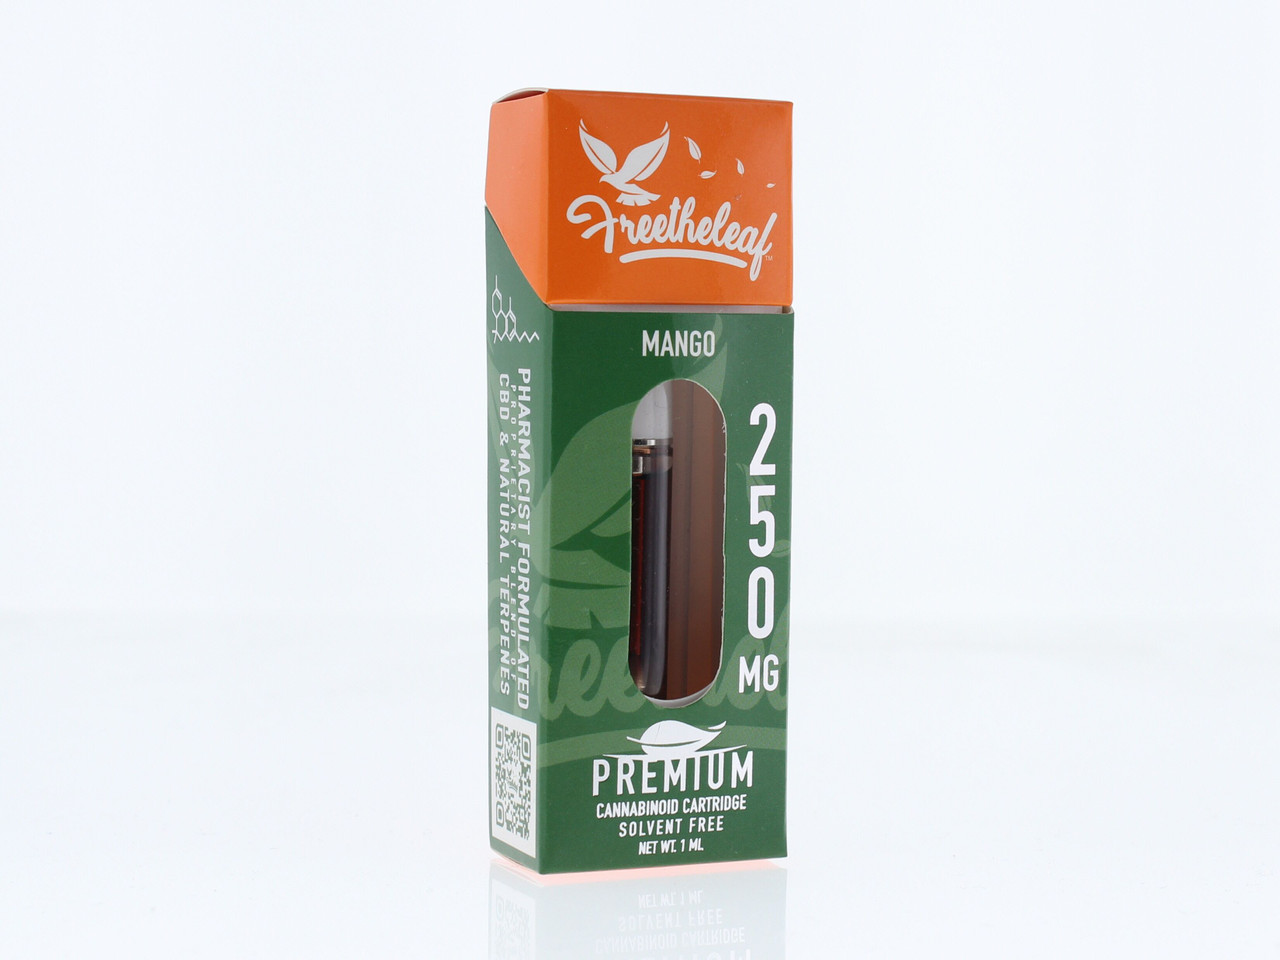 Free The Leaf – CBD 250MG Cartridge